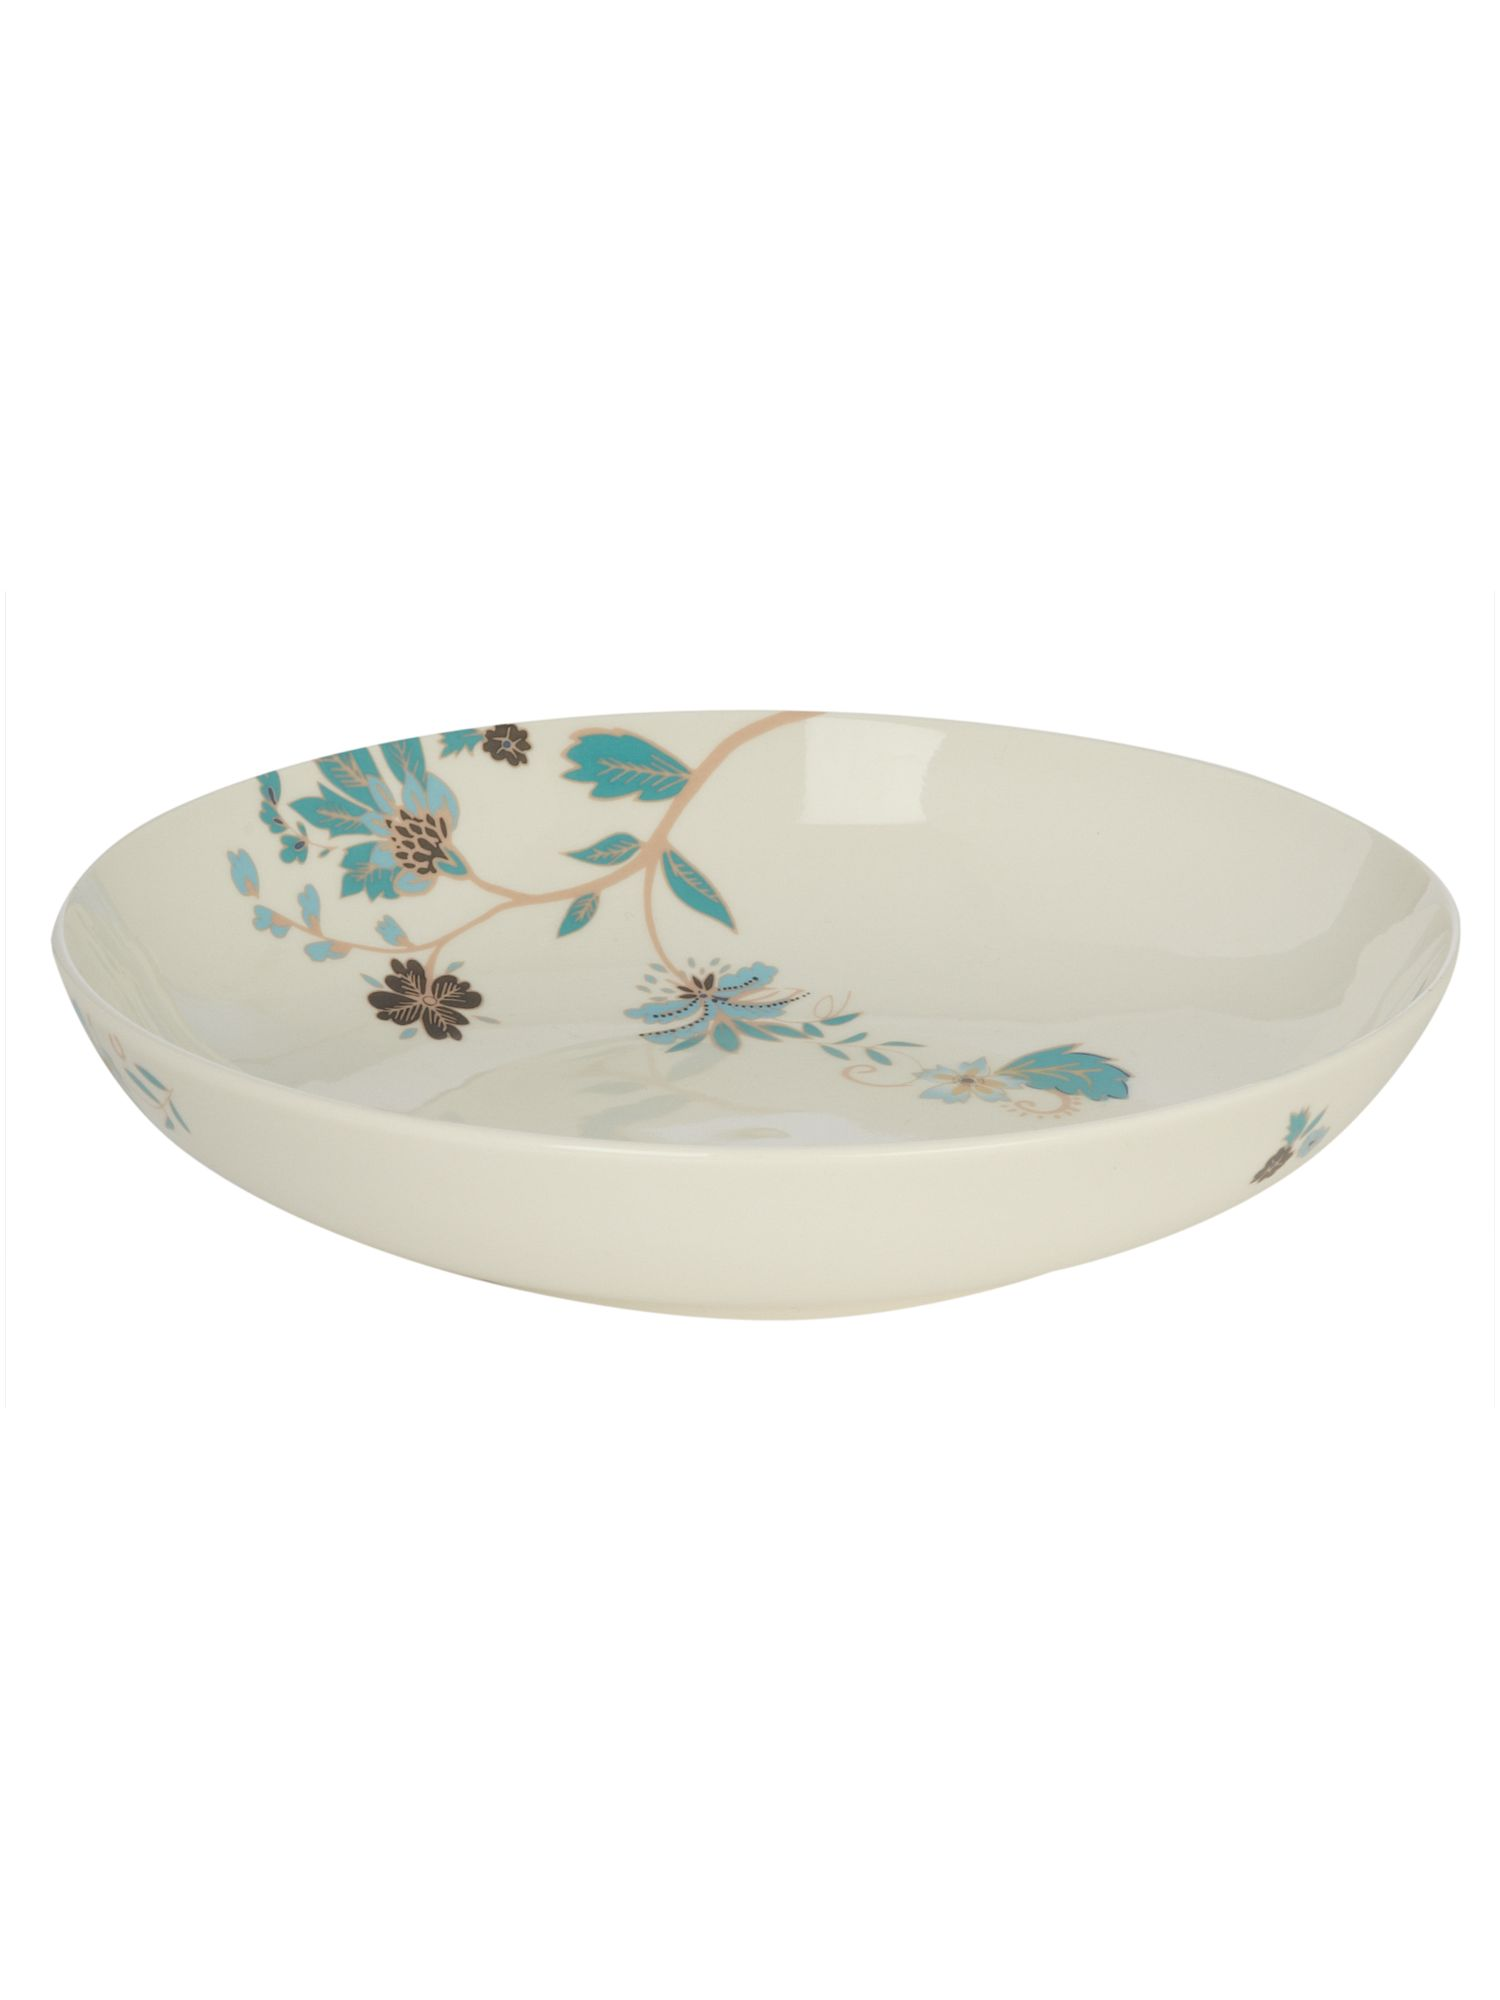 Monsoon Veronica Pasta Bowl